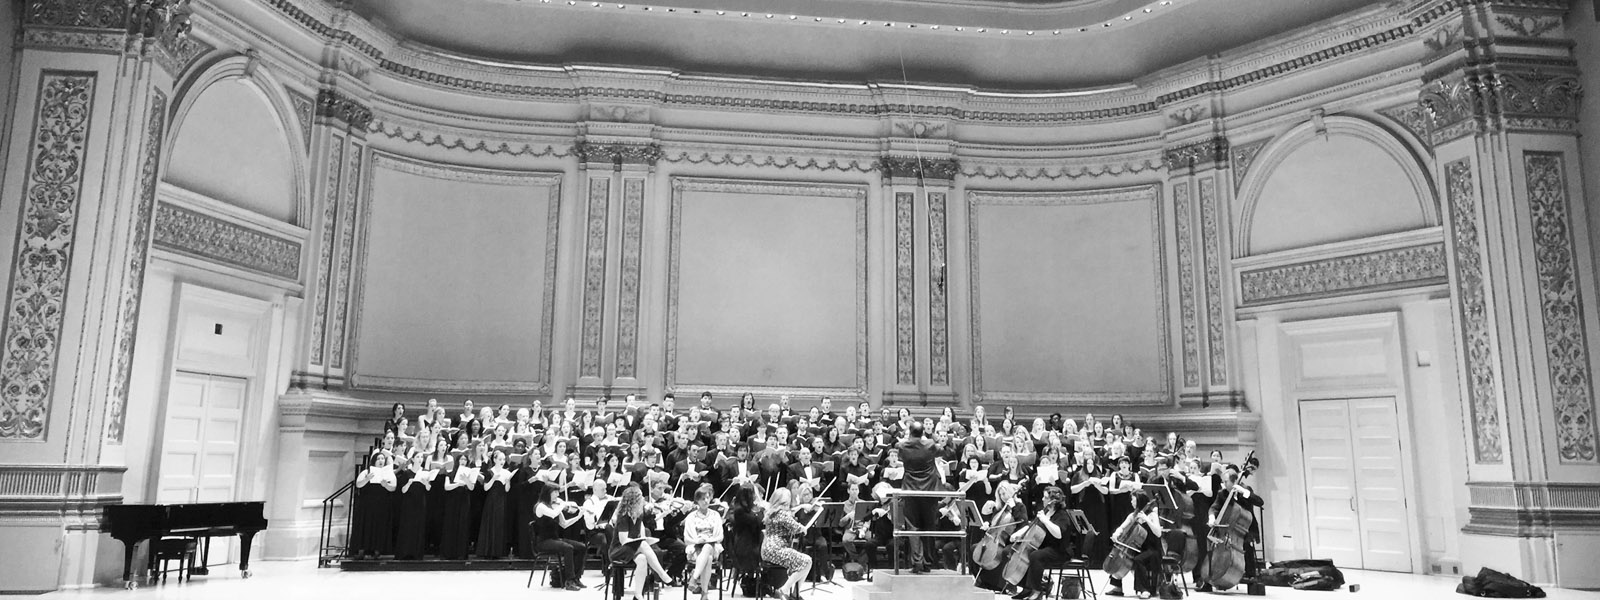 Concert Choir performs at Carnegie Hall